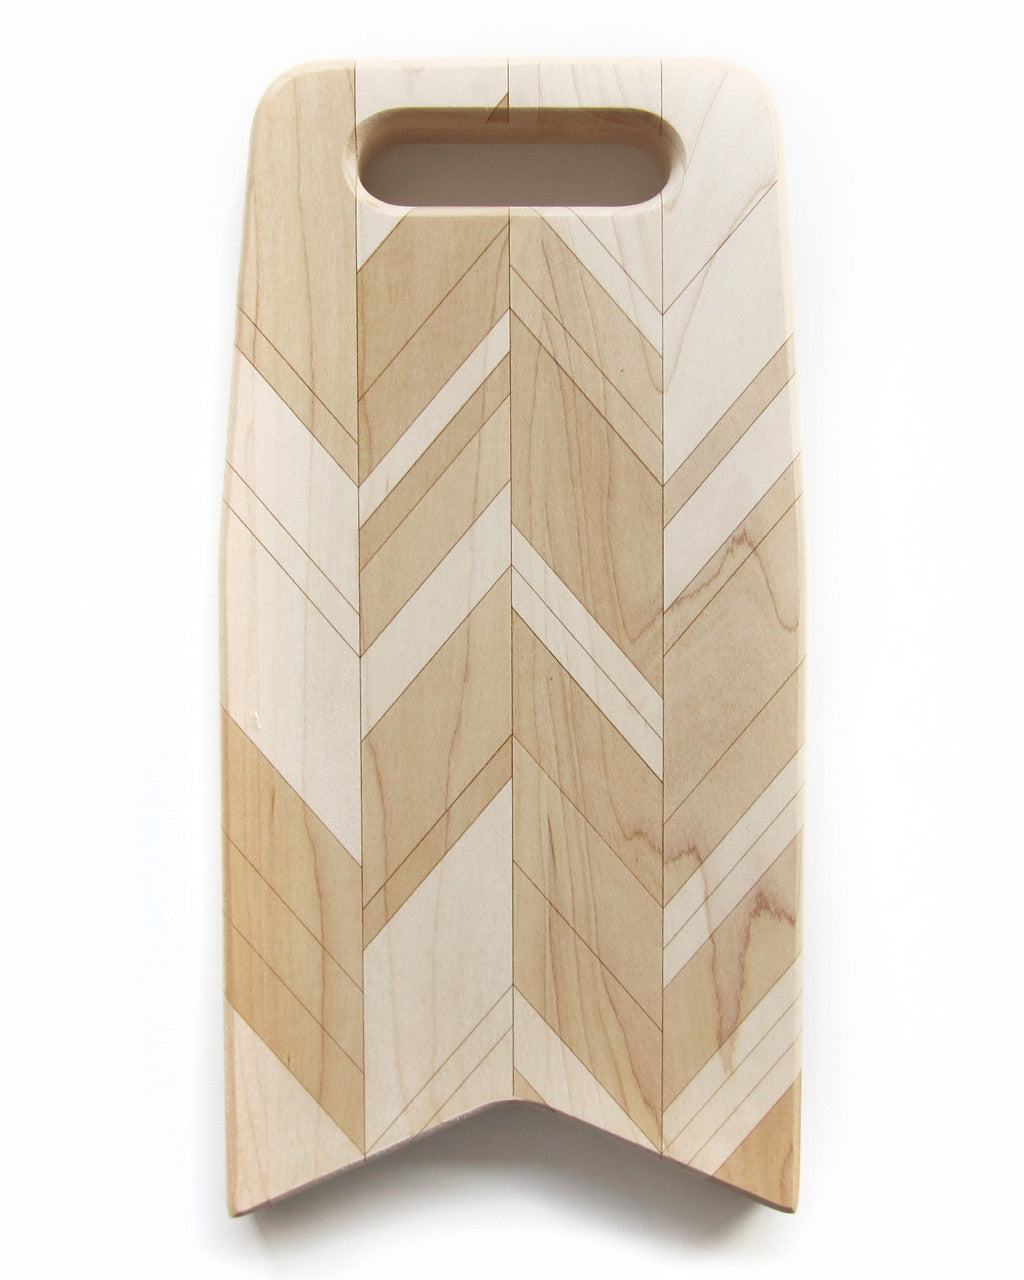 AHeirloom Herringbone Flag Cutting Board - AHeirloom